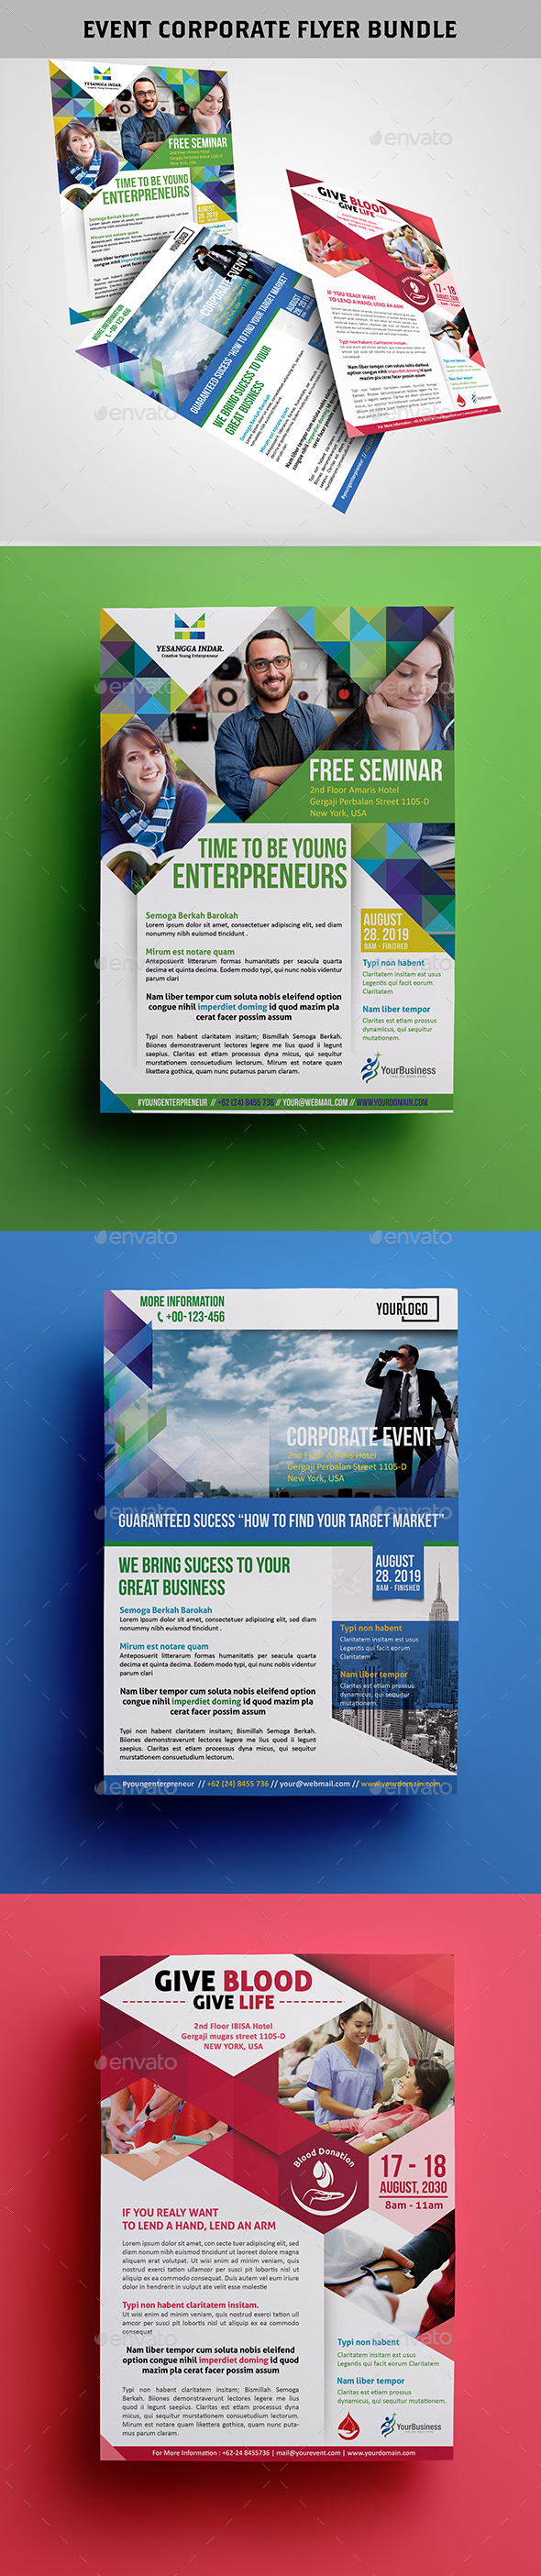 Event Corporate Flyer Bundle